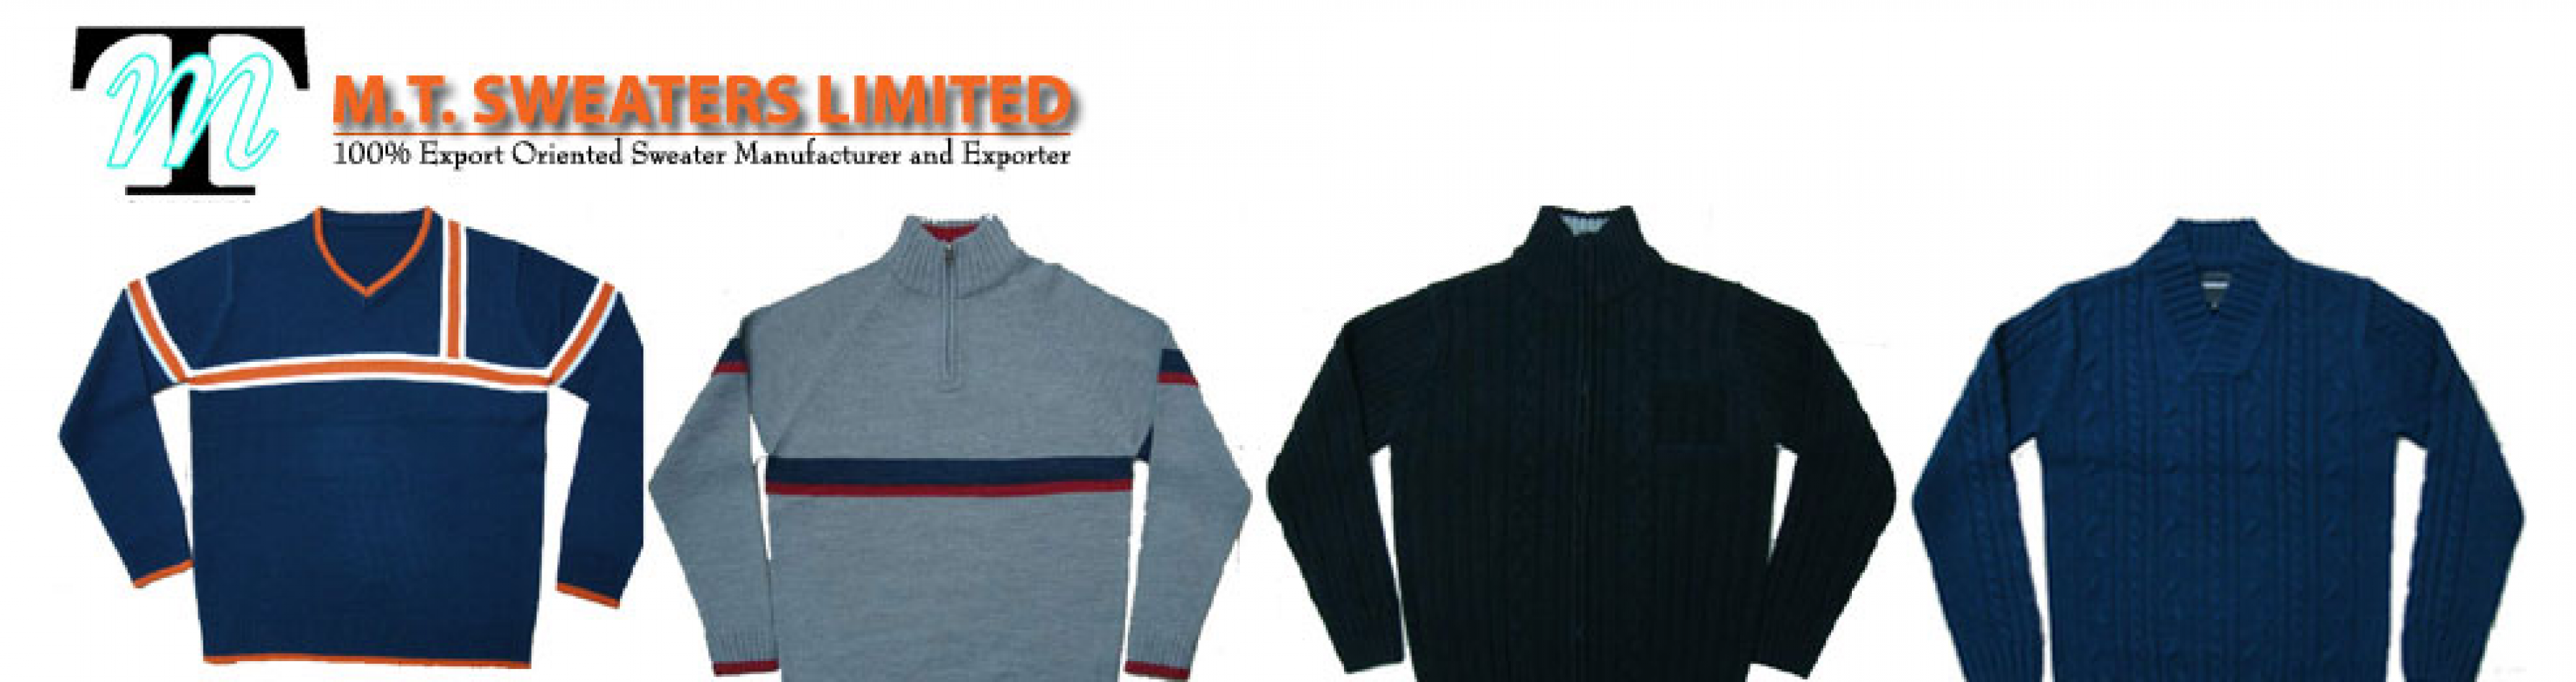 M. T. SWEATERS LIMITED.